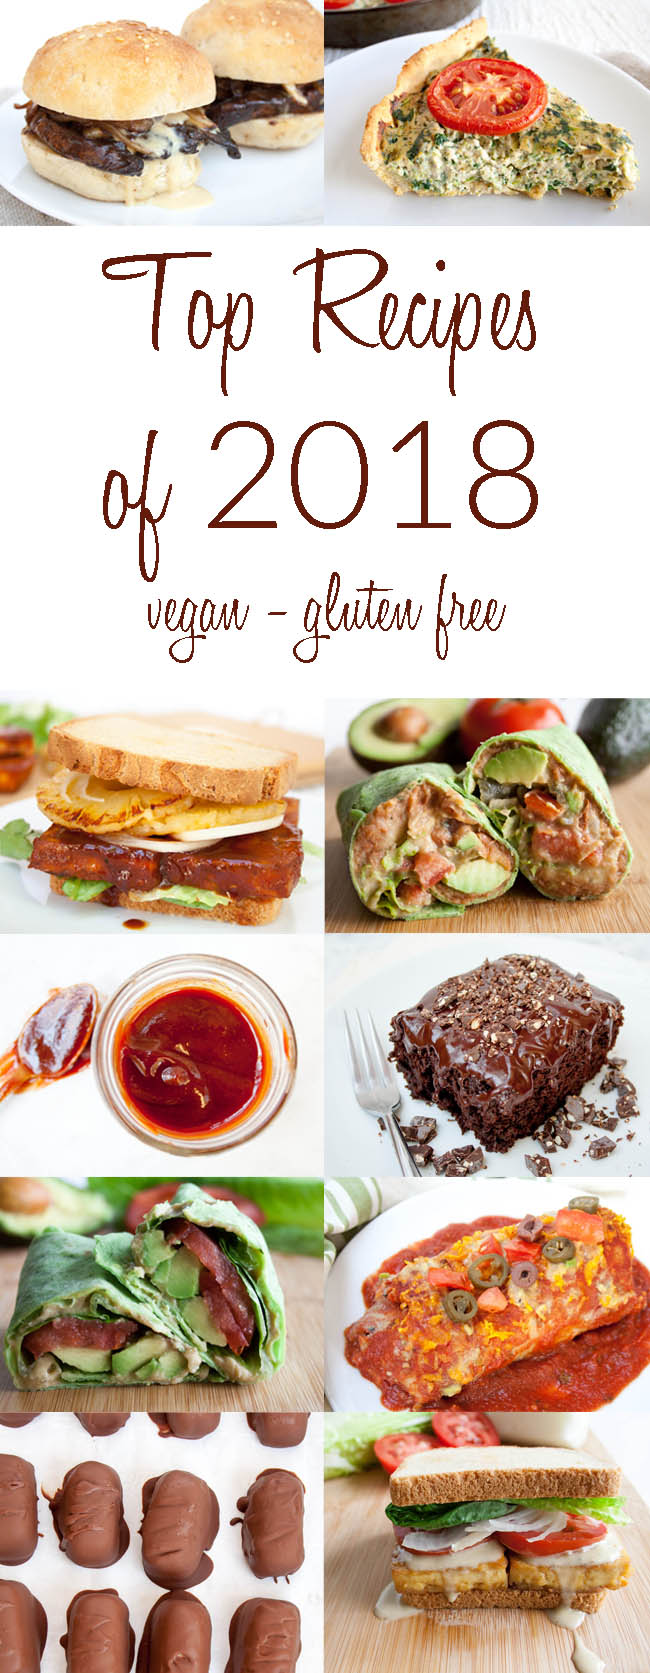 Top 10 Recipes of 2018 collage photo with text.